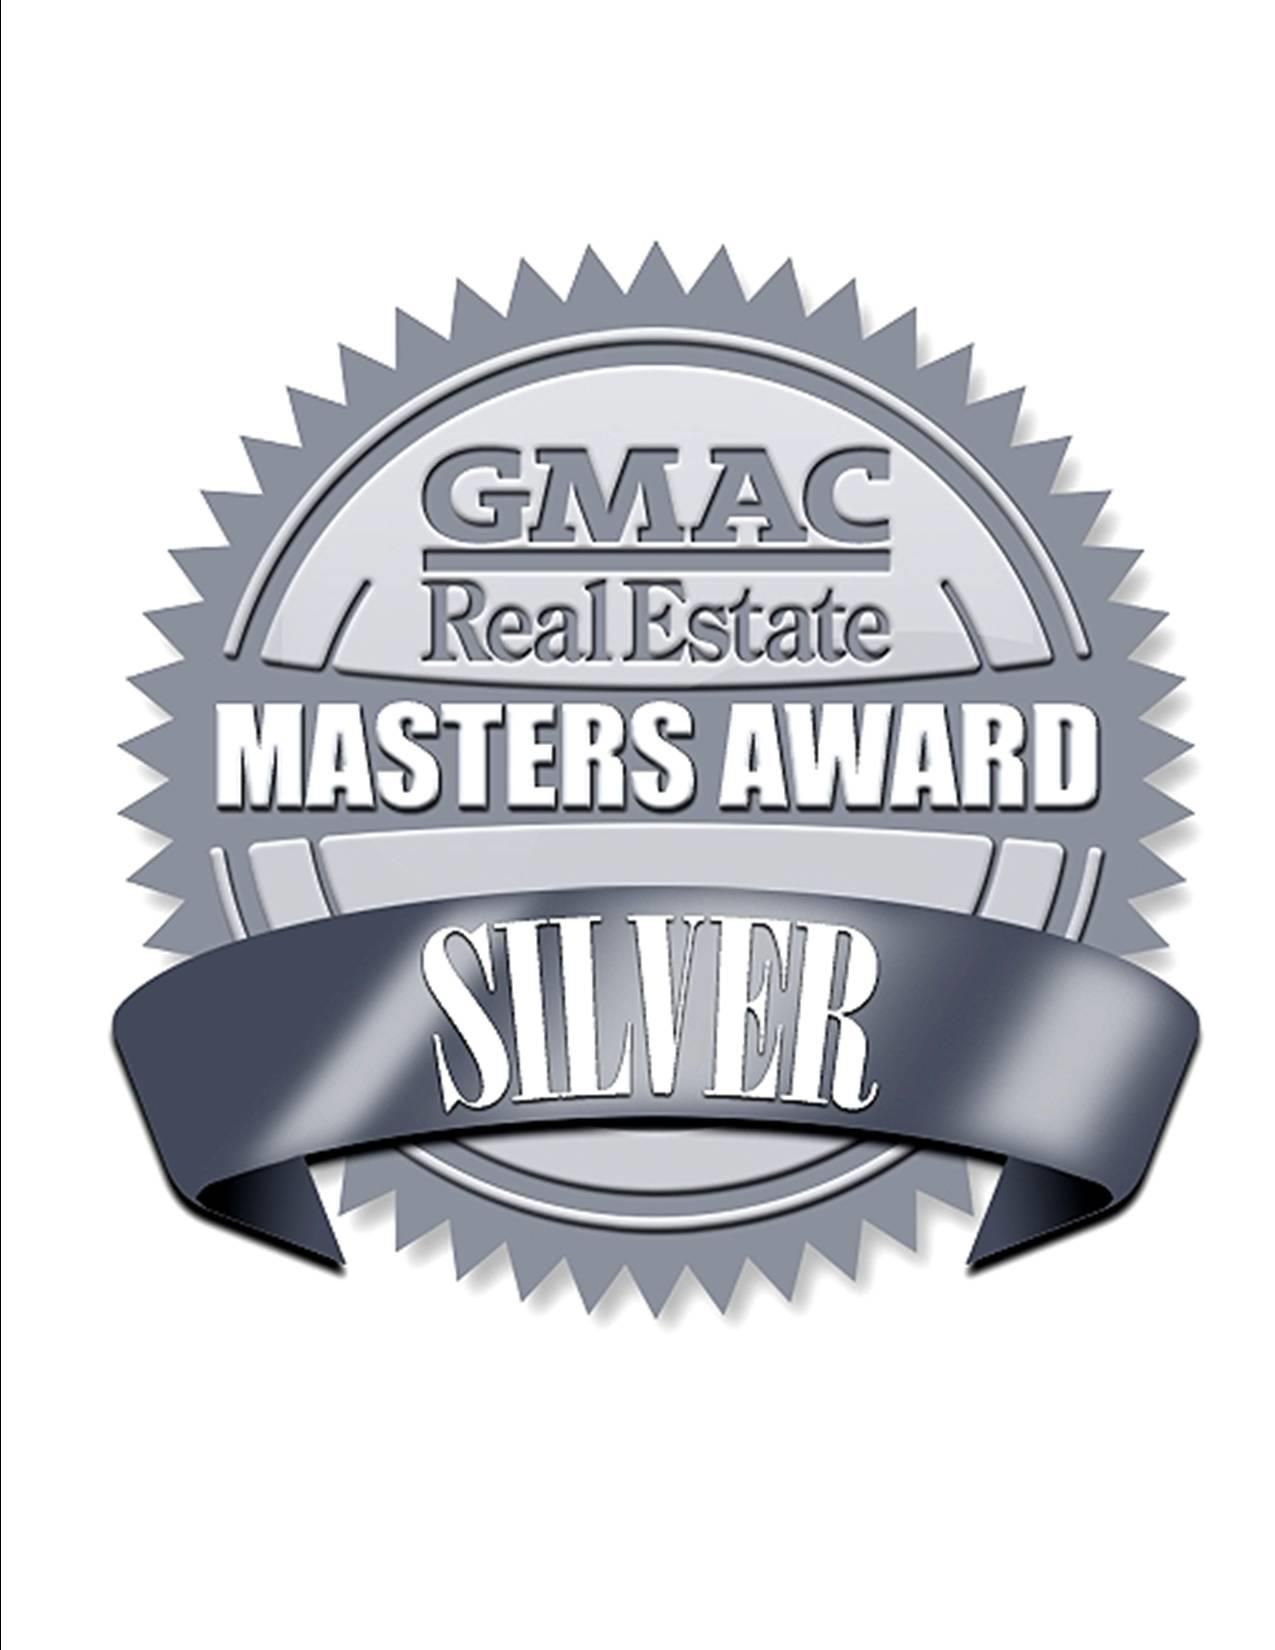 GMAC Sales Award Winner 2008 & 2009